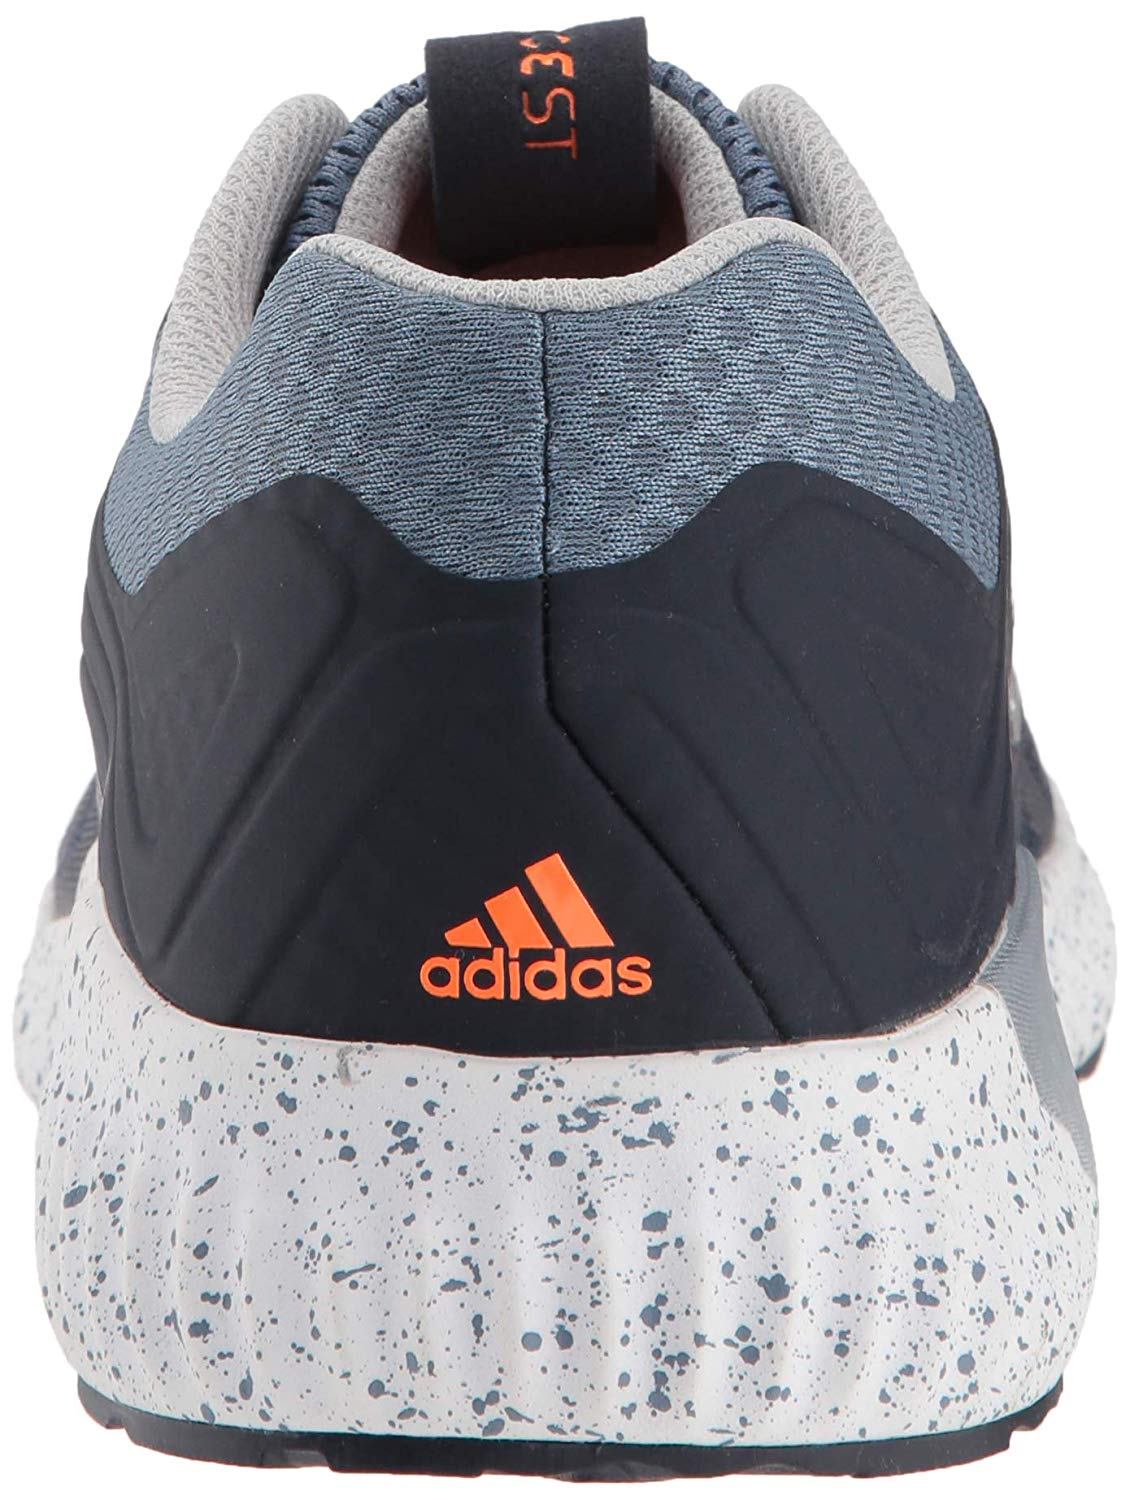 a169ae25550 ... Adidas Aerobounce St Zapatillas De Running Naranja Stonewall Camps   reputable site 13eea af567 Click Thumbnails to Enlarge